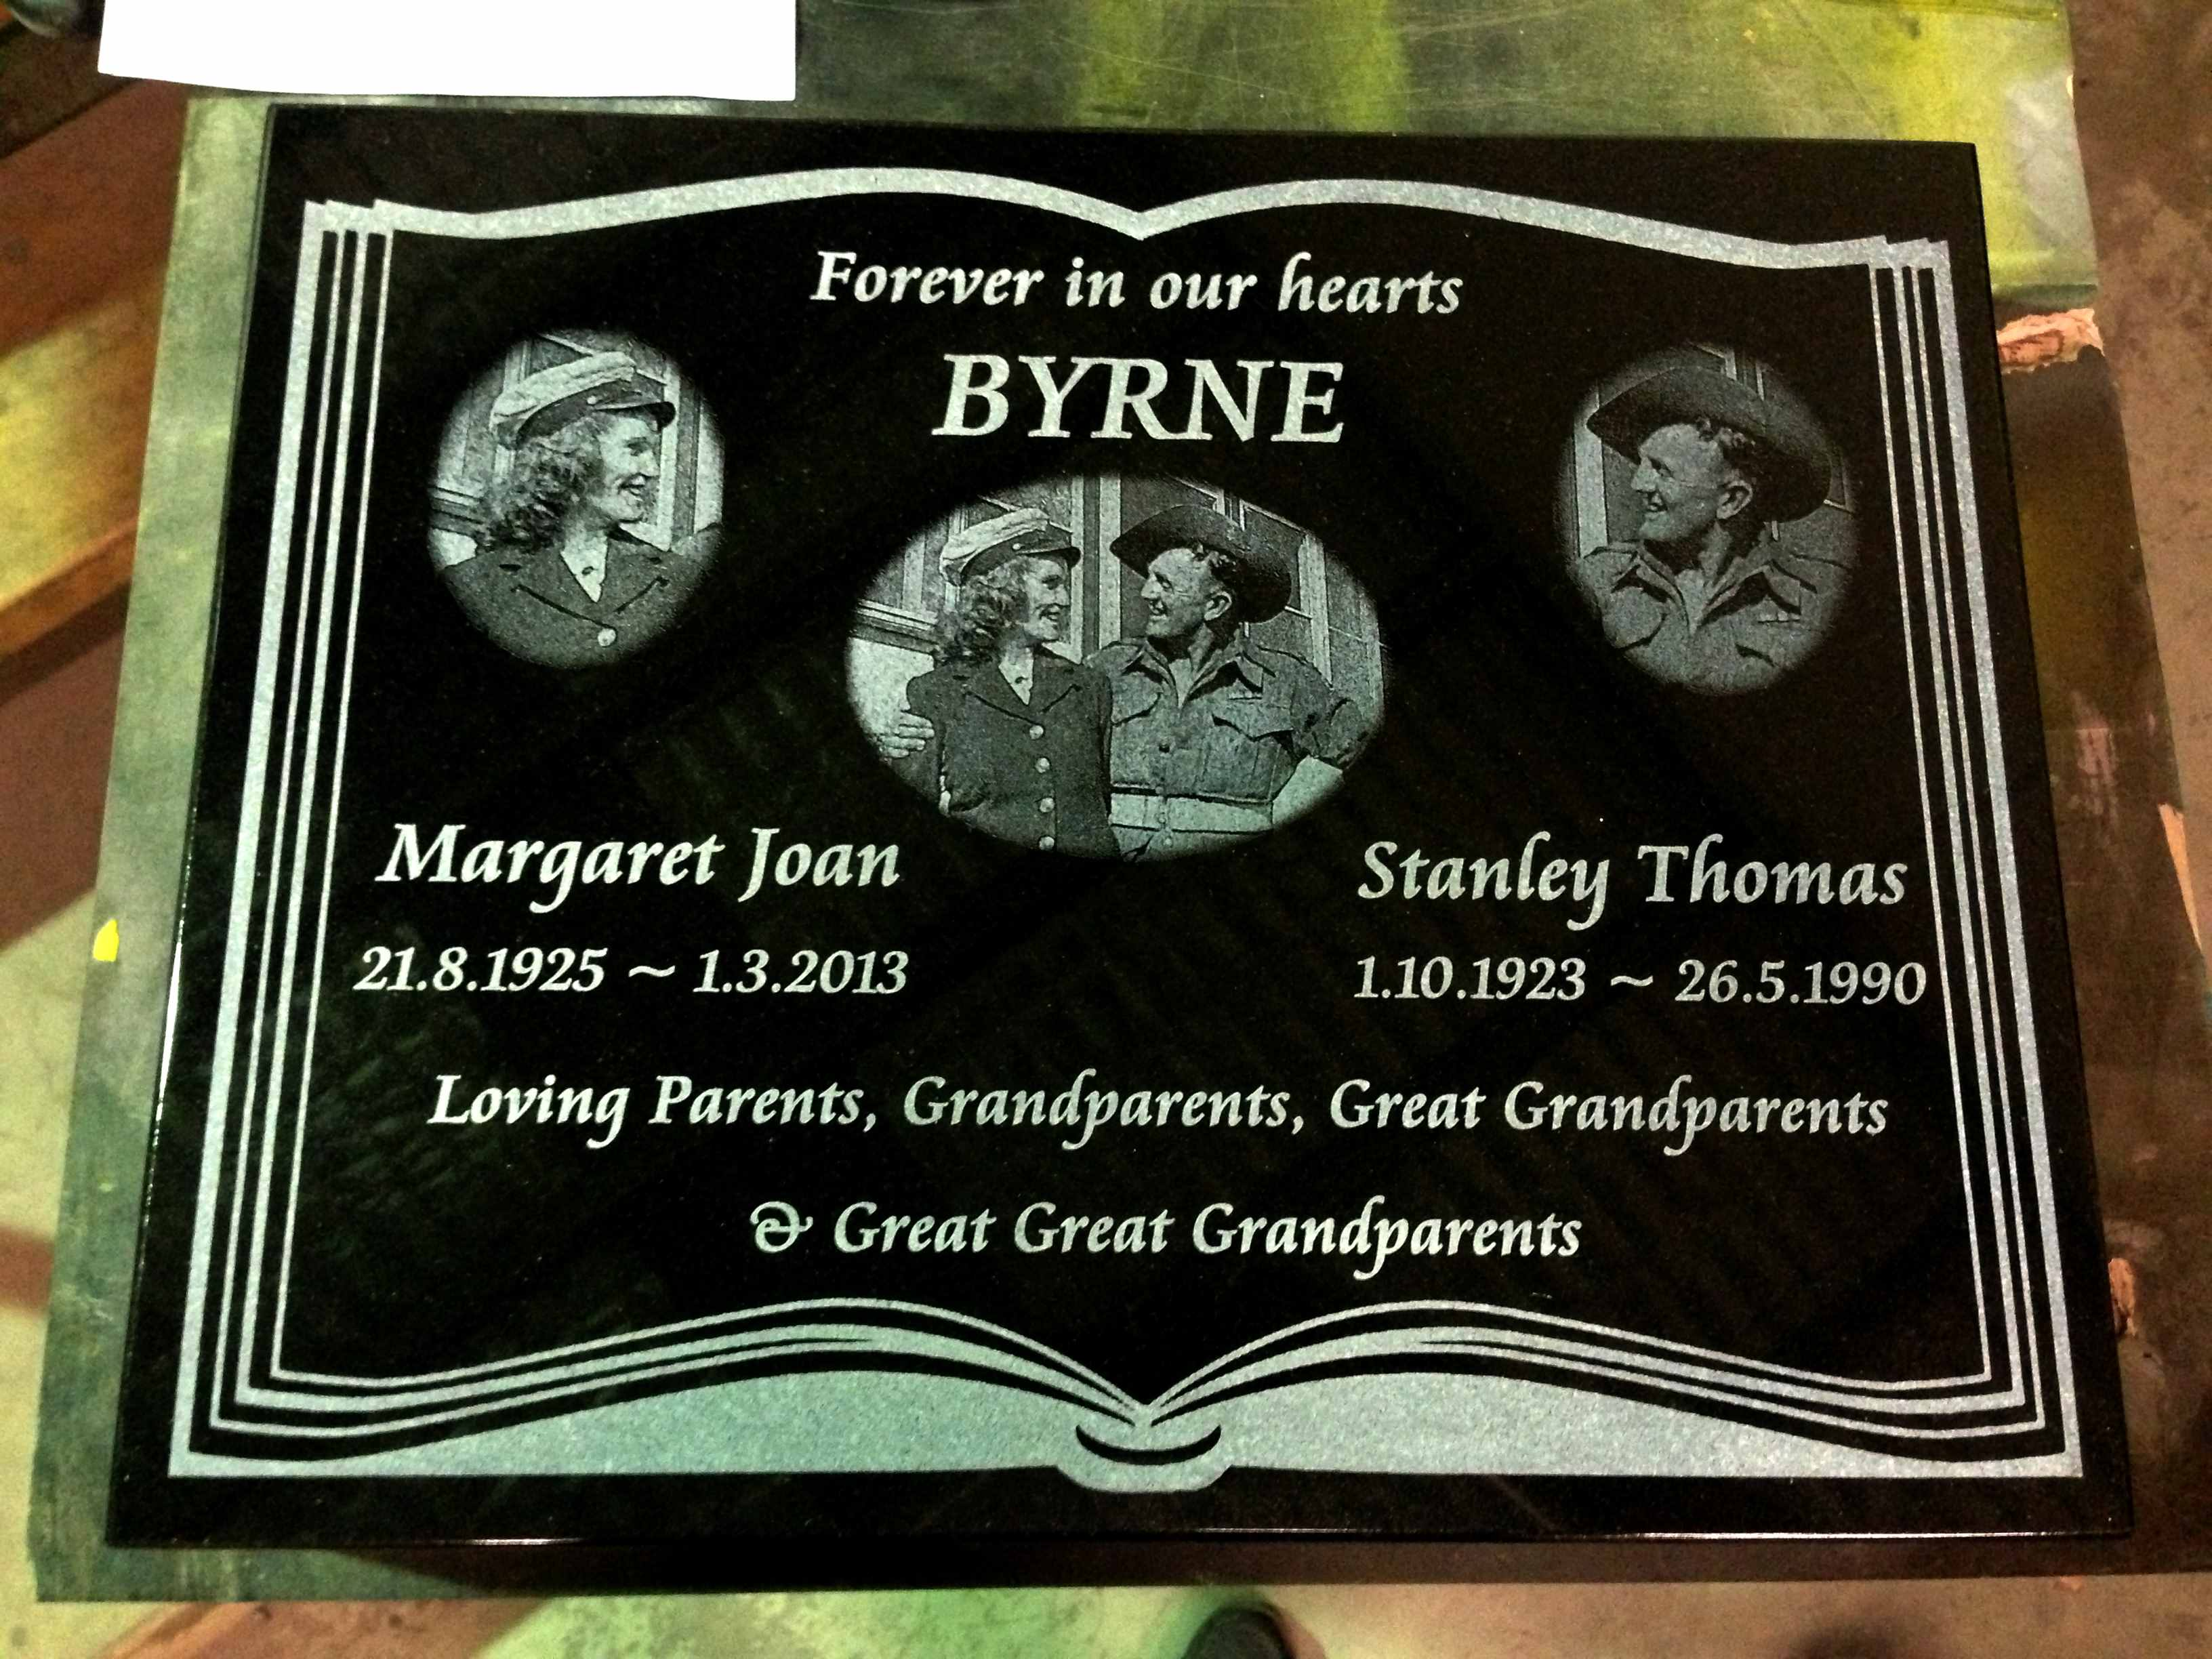 laser engraved lawn plaque.jpg